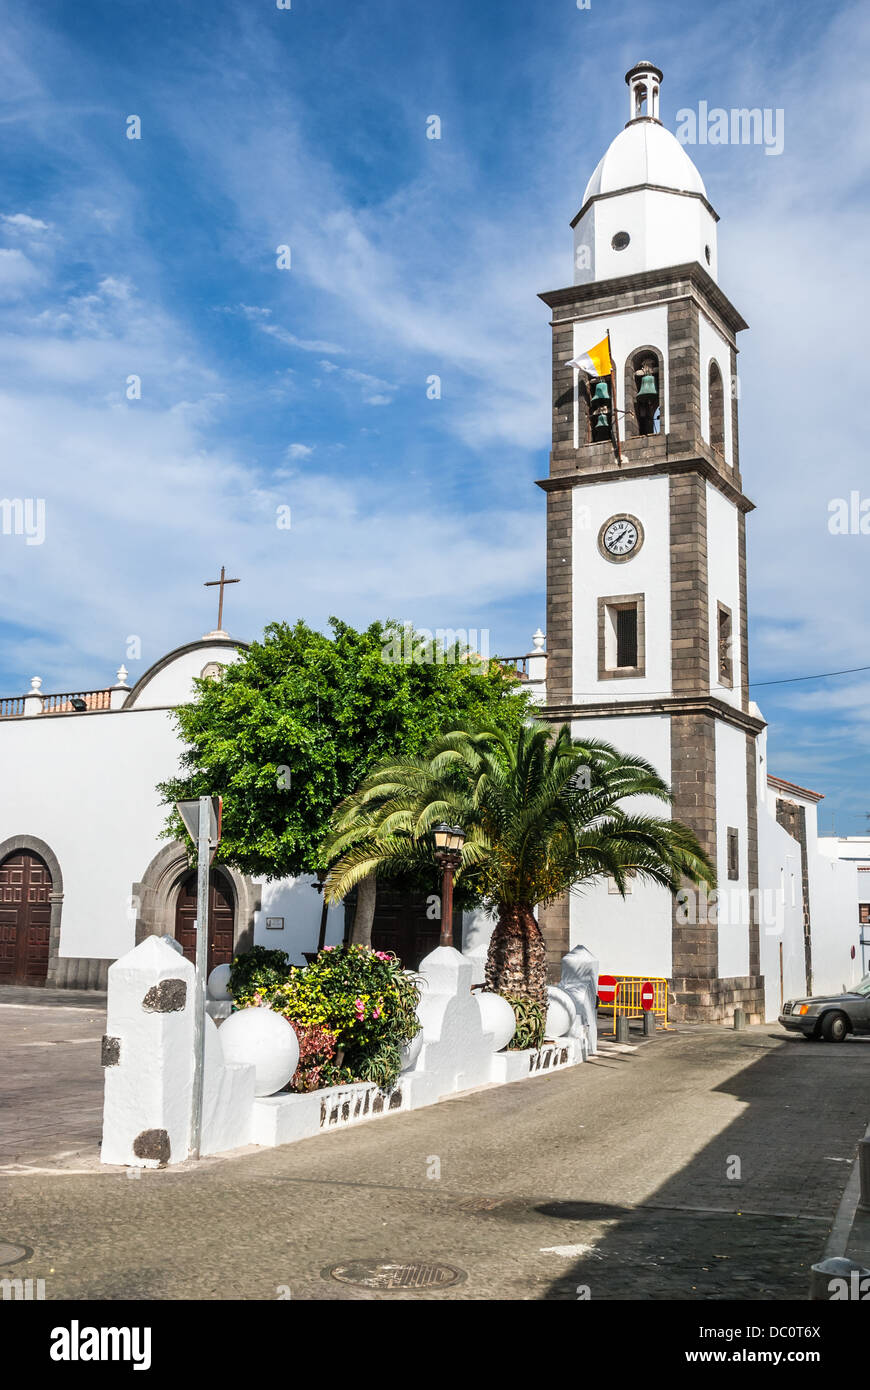 The beautiful church of San Gines in Arrecife with its white-washed exterior and attractive bell tower - Stock Image